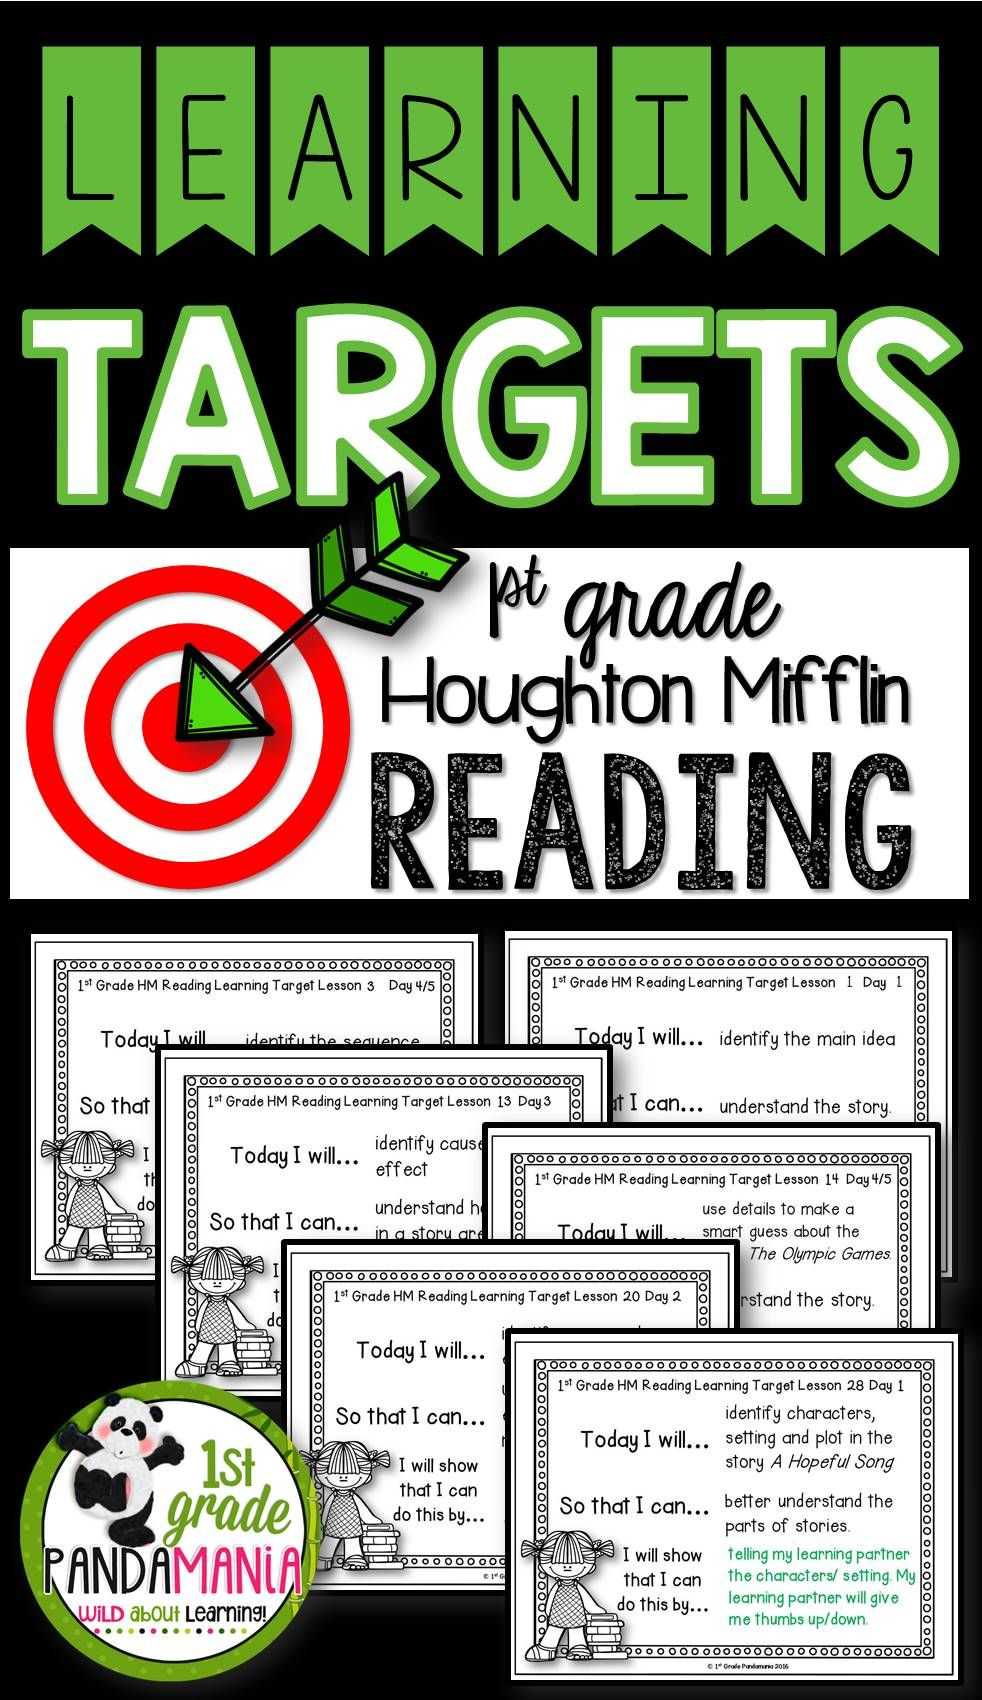 small resolution of Learning Target Posters for the Year! Houghton Mifflin Journeys 2011  Reading for 1st Grade. Post daily Learning Int…   Learning targets